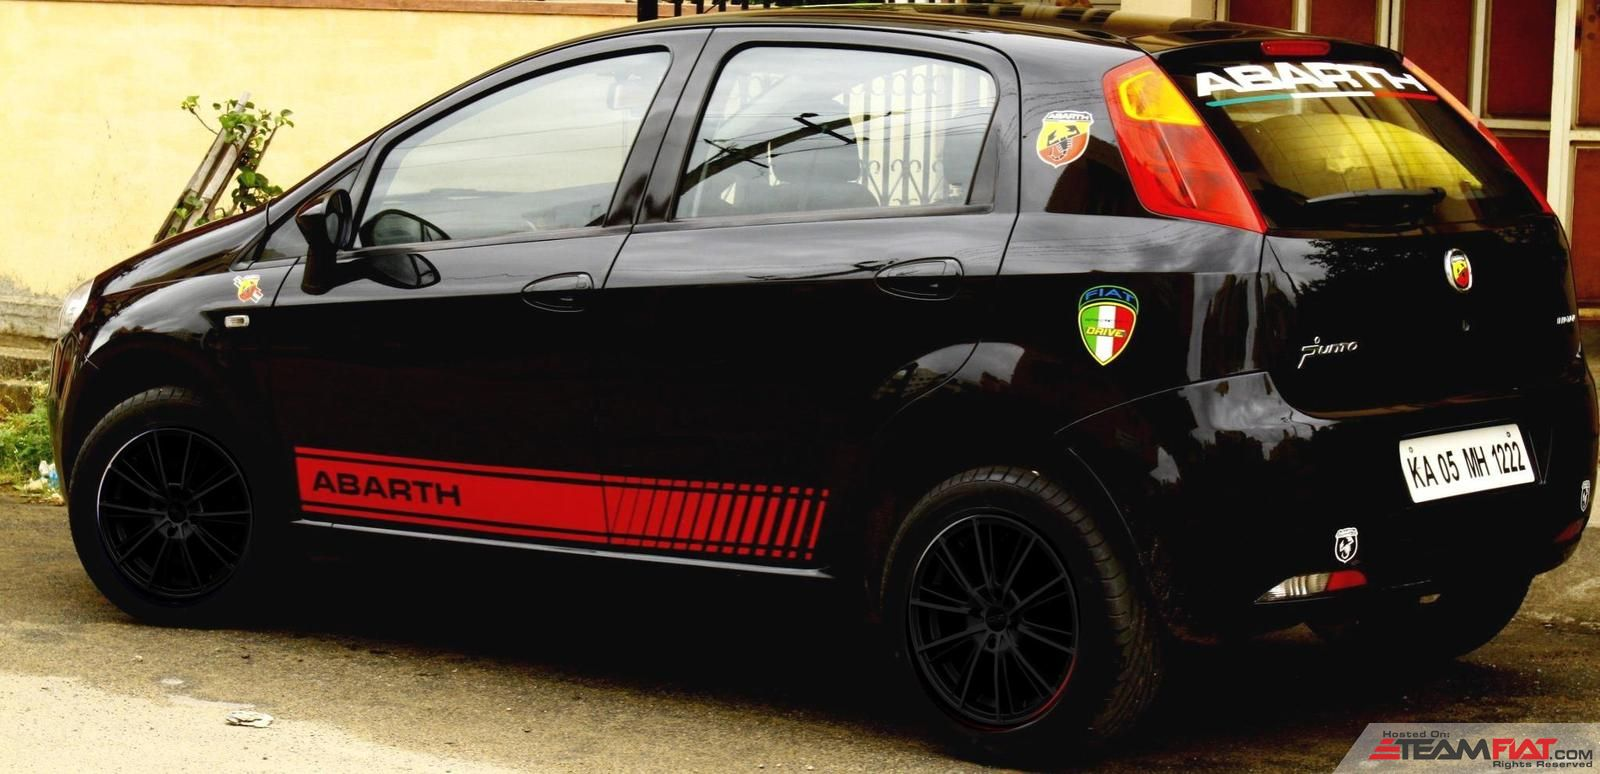 blackabarth.jpg